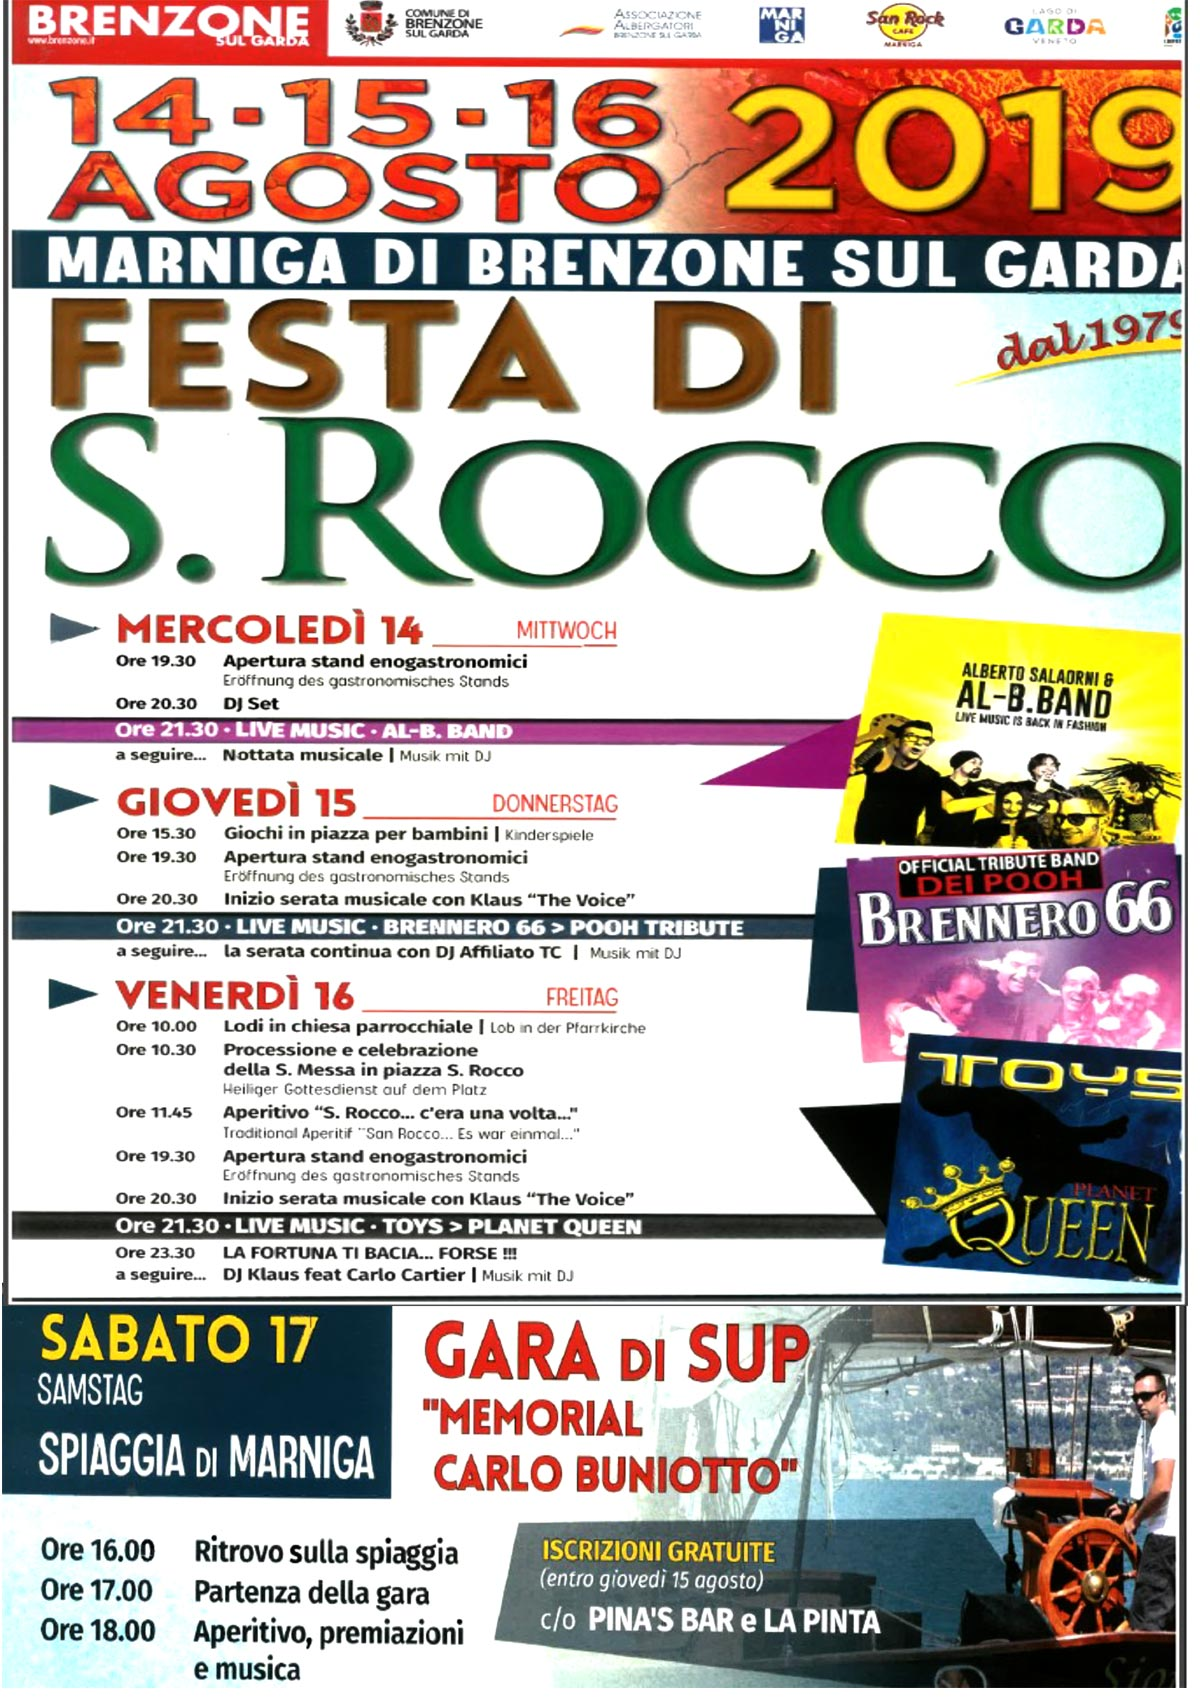 San Rocco - Historical Festival of Marniga di Brenzone from 14 to 16 August